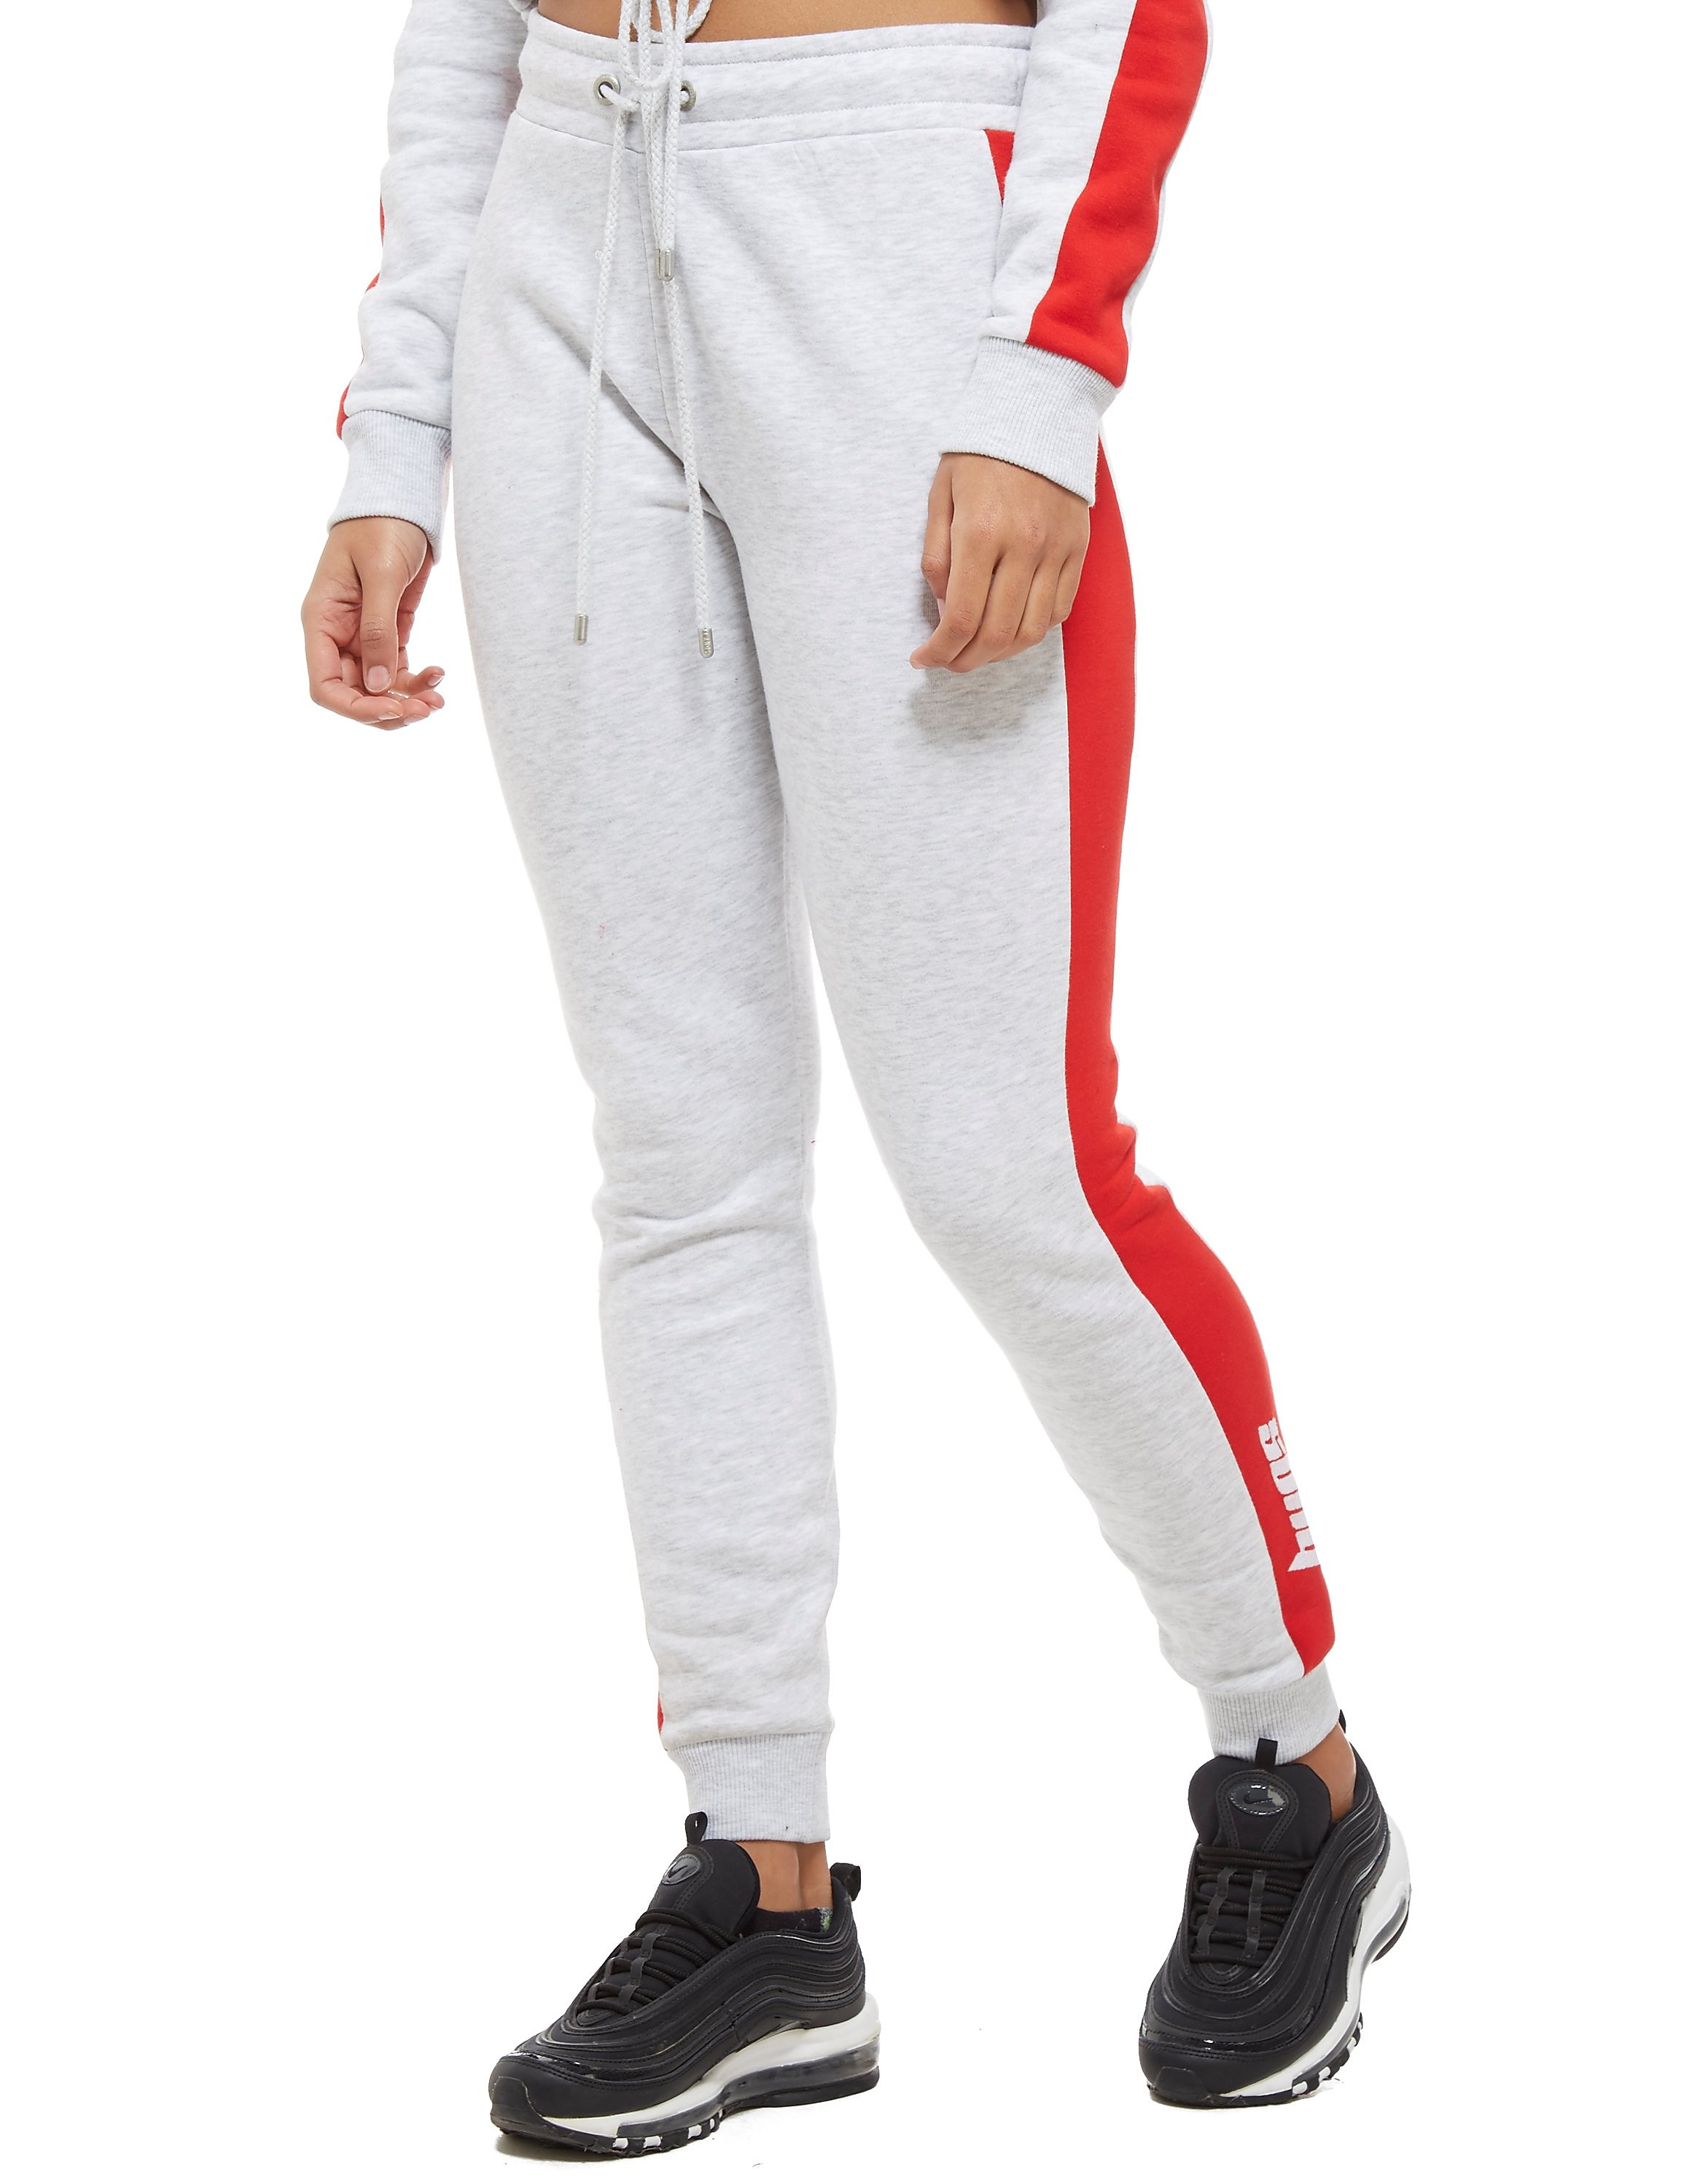 Supply & Demand Contrast Joggers - Light Grey/Red - Dames